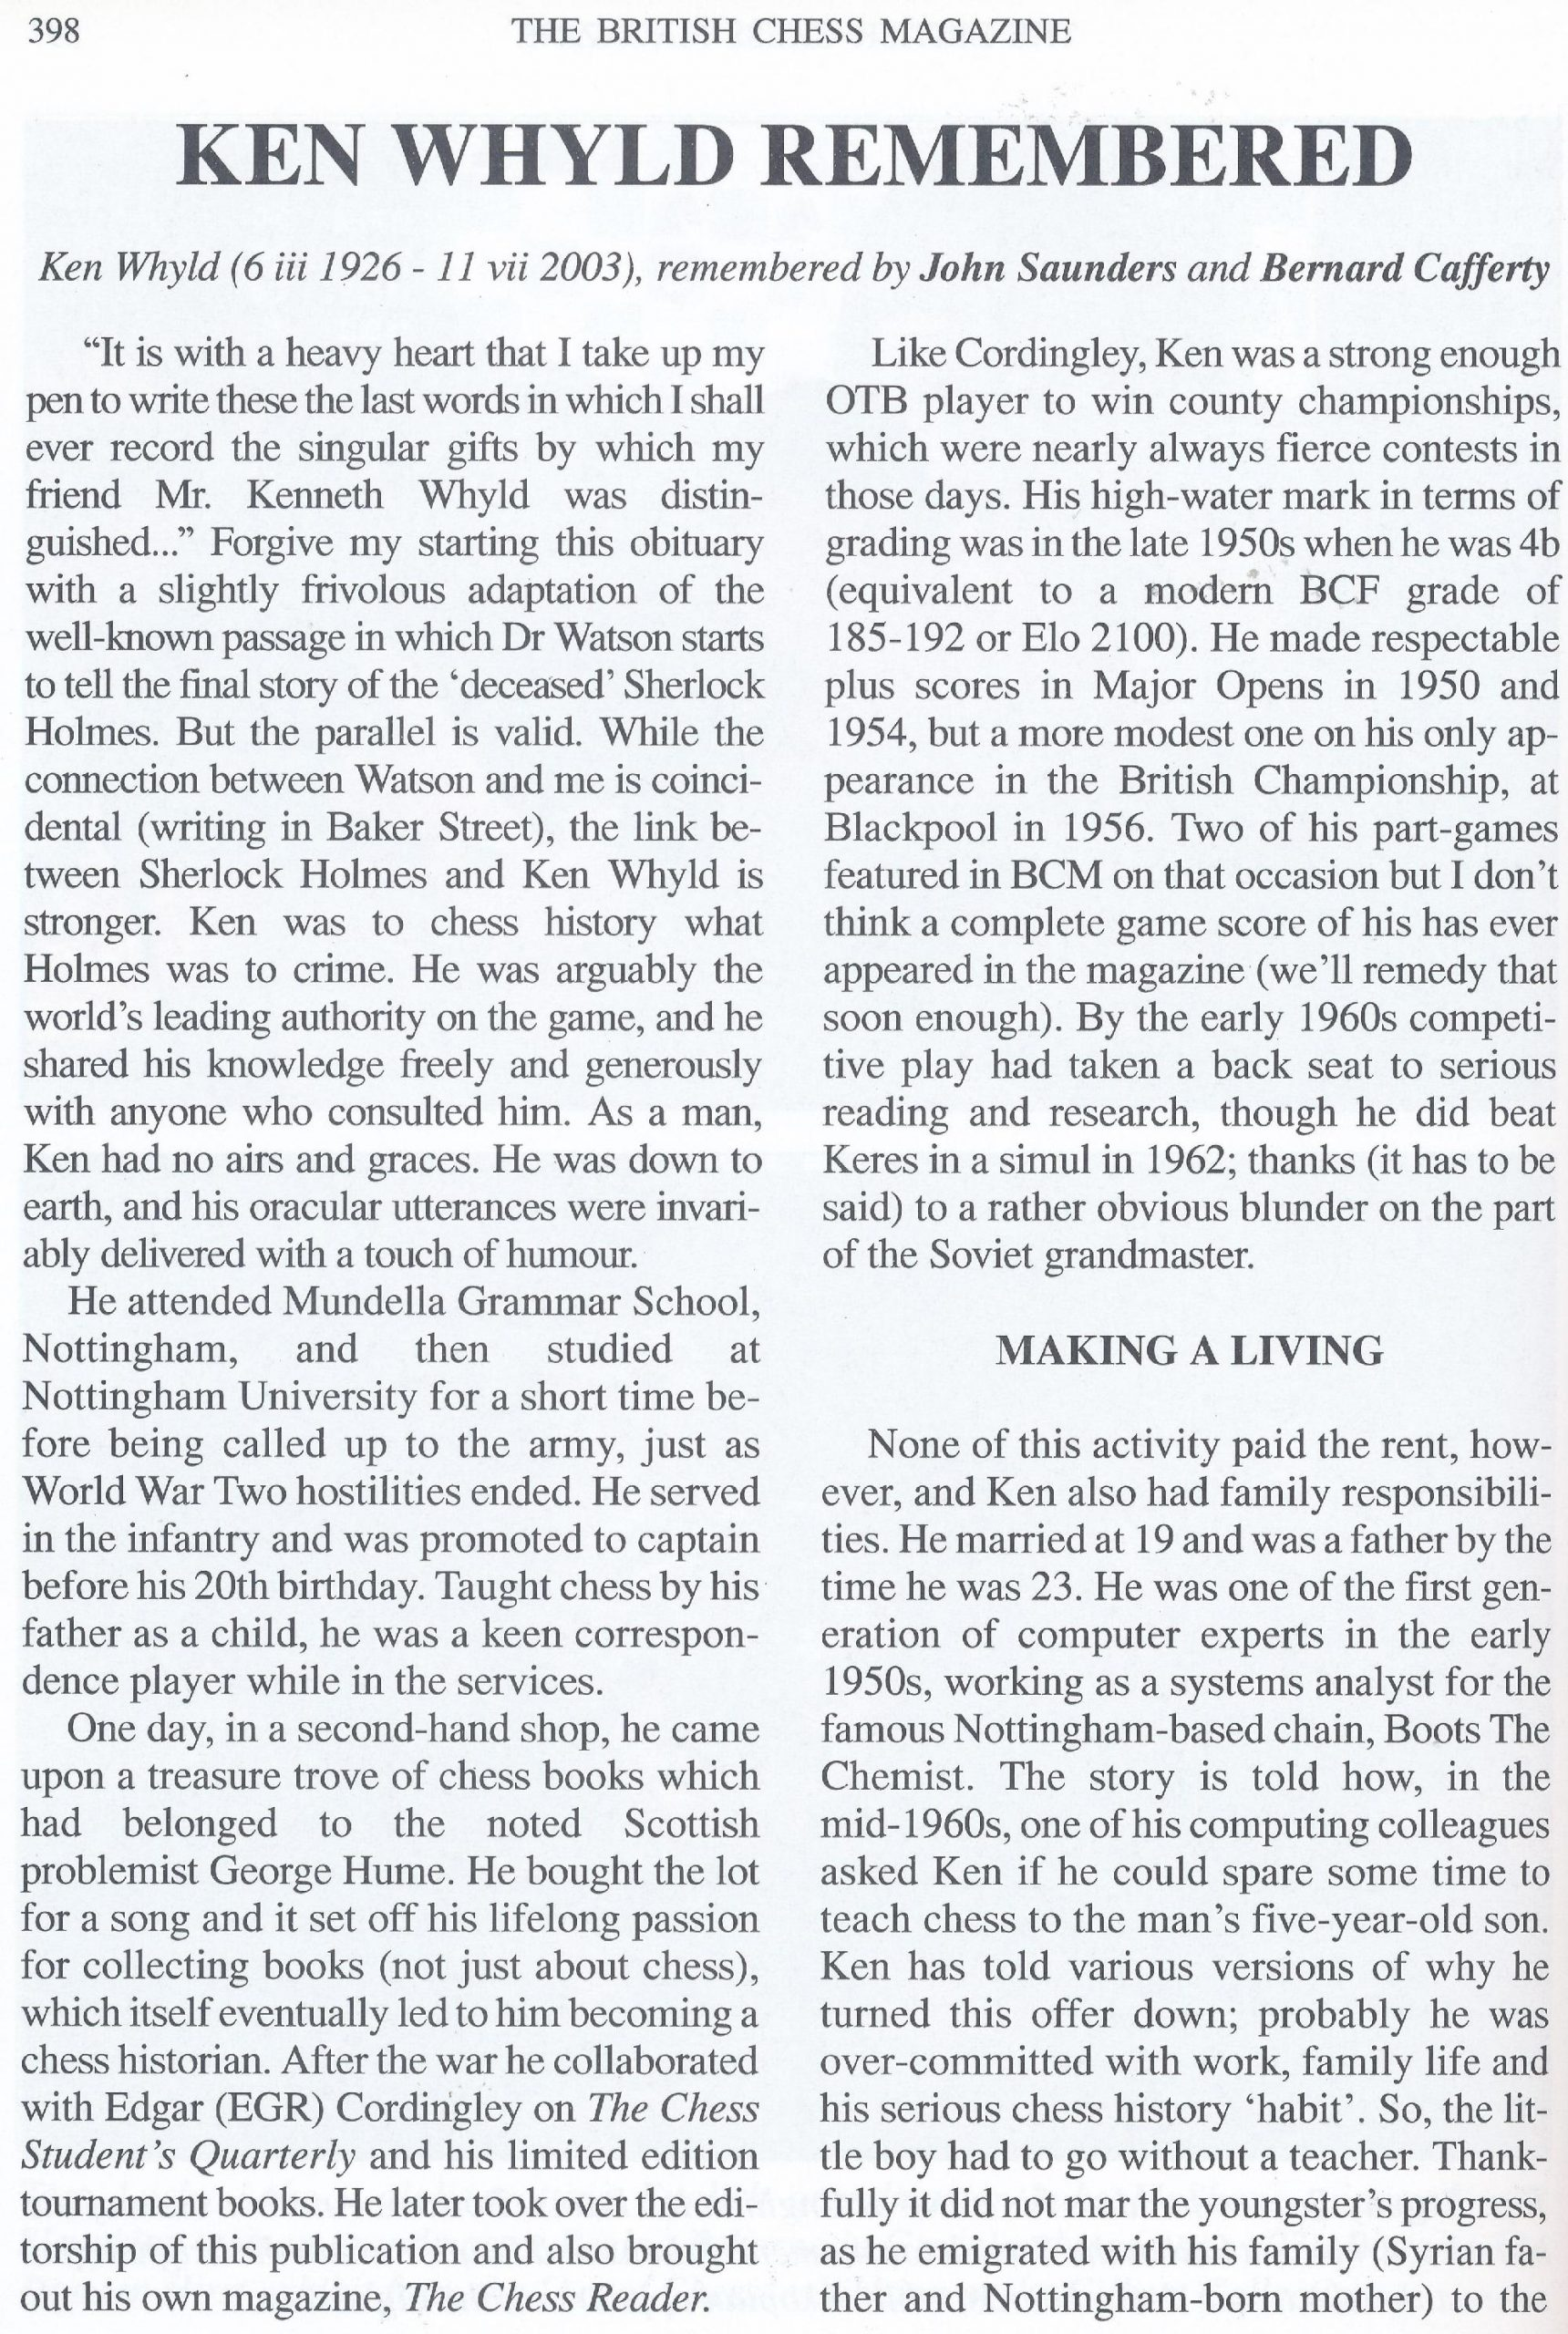 Ken Whyld Remembered from British Chess Magazine, Volume CXXIII (123), Number 8 (August), page 398 by Editor, John Saunders and Bernard Cafferty